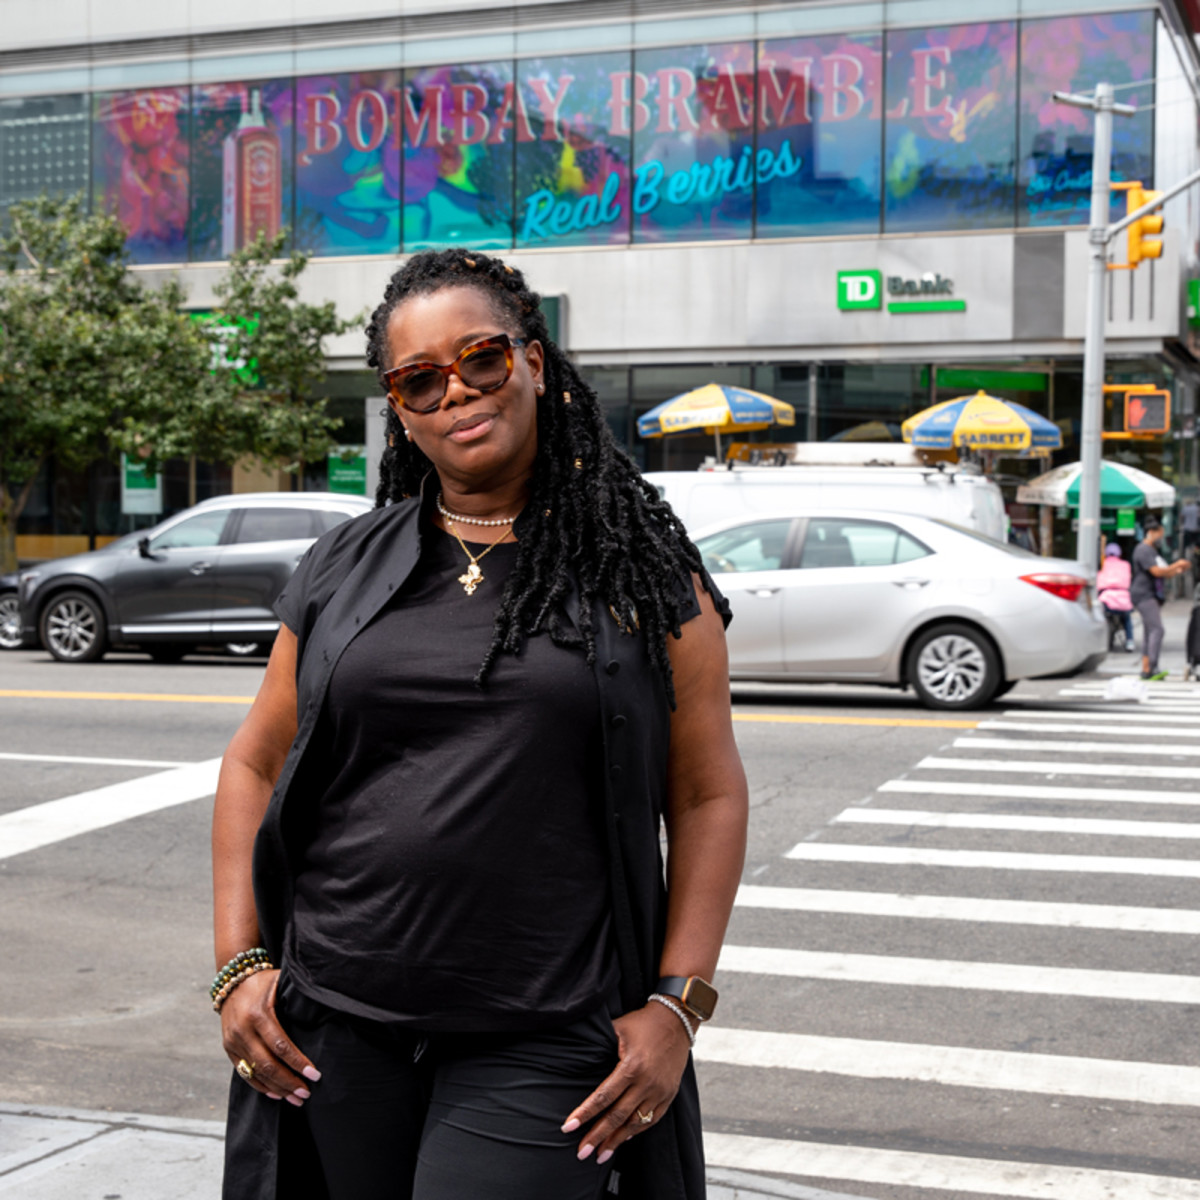 Dianne Smith stands in front of her Bombay Bramble billboard